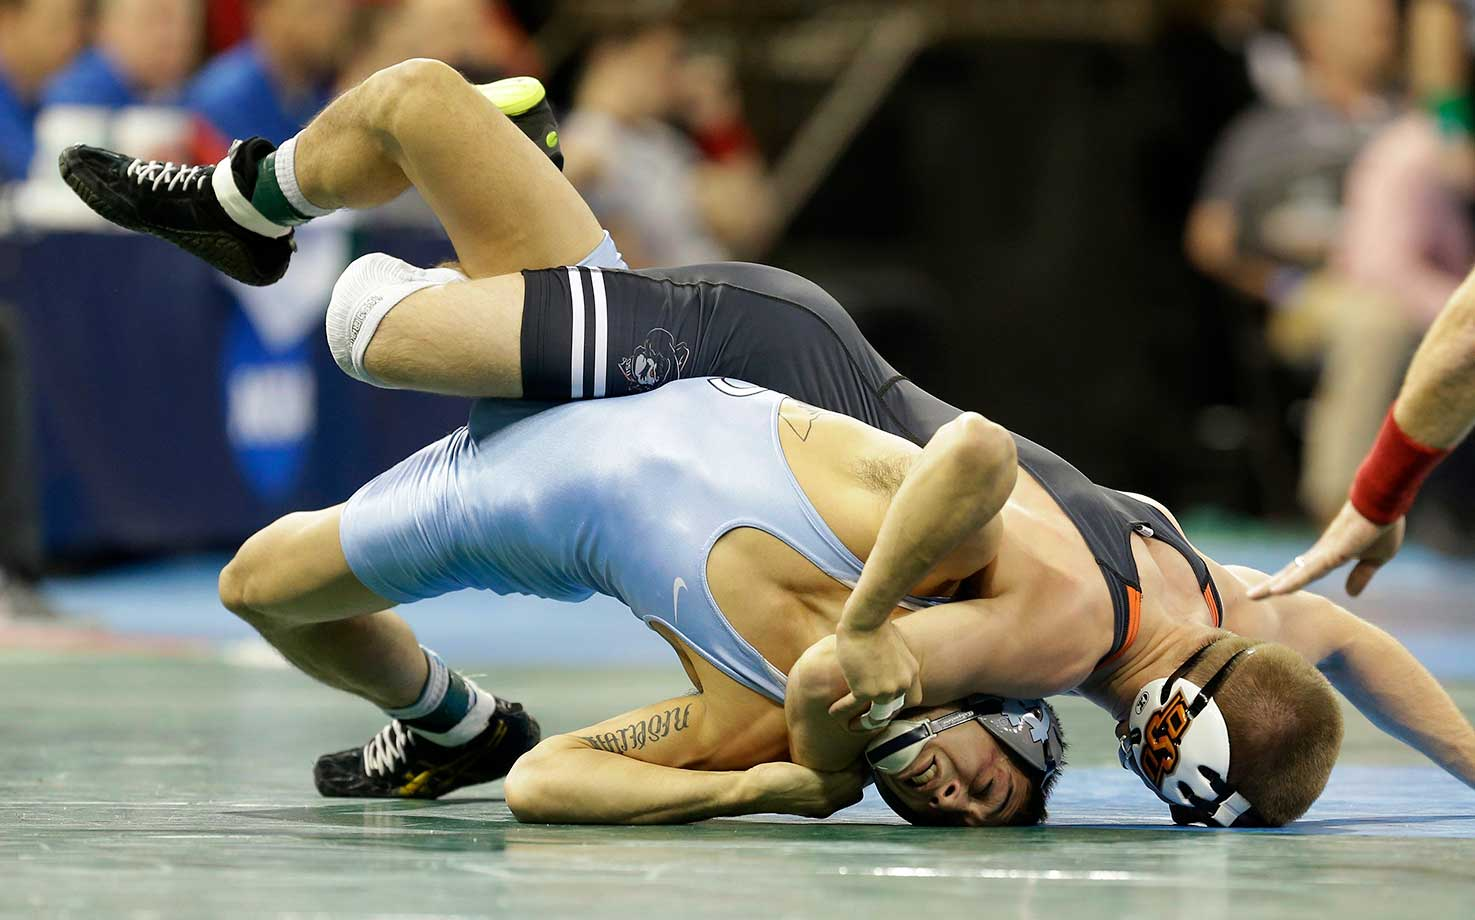 North Carolina's Joseph Ward, left, gets tangles up with Oklahoma State's Dean Heil in a 141-pound match during the NCAA Division 1 wrestling championship.